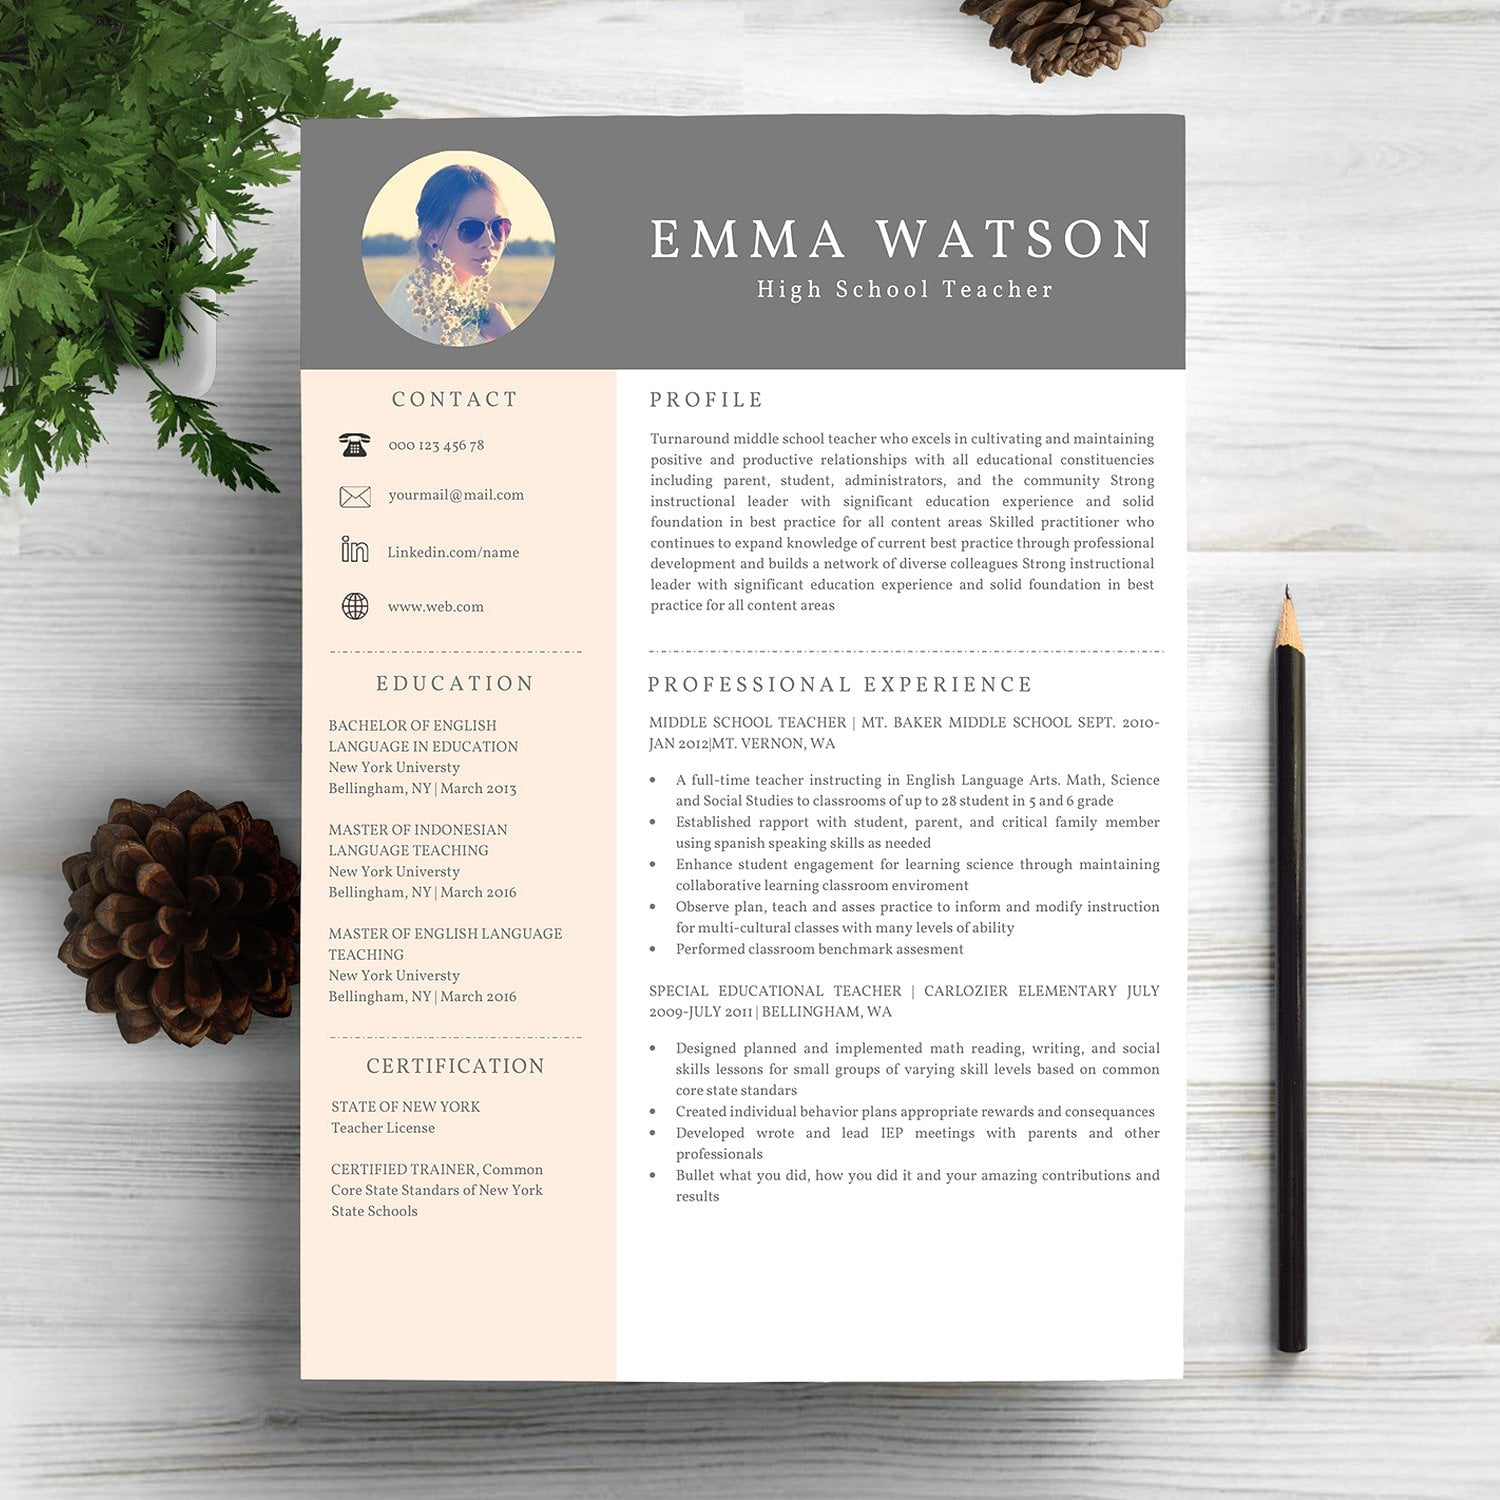 Professional Cv Resume Templates: 6 Work Resume CV Templates